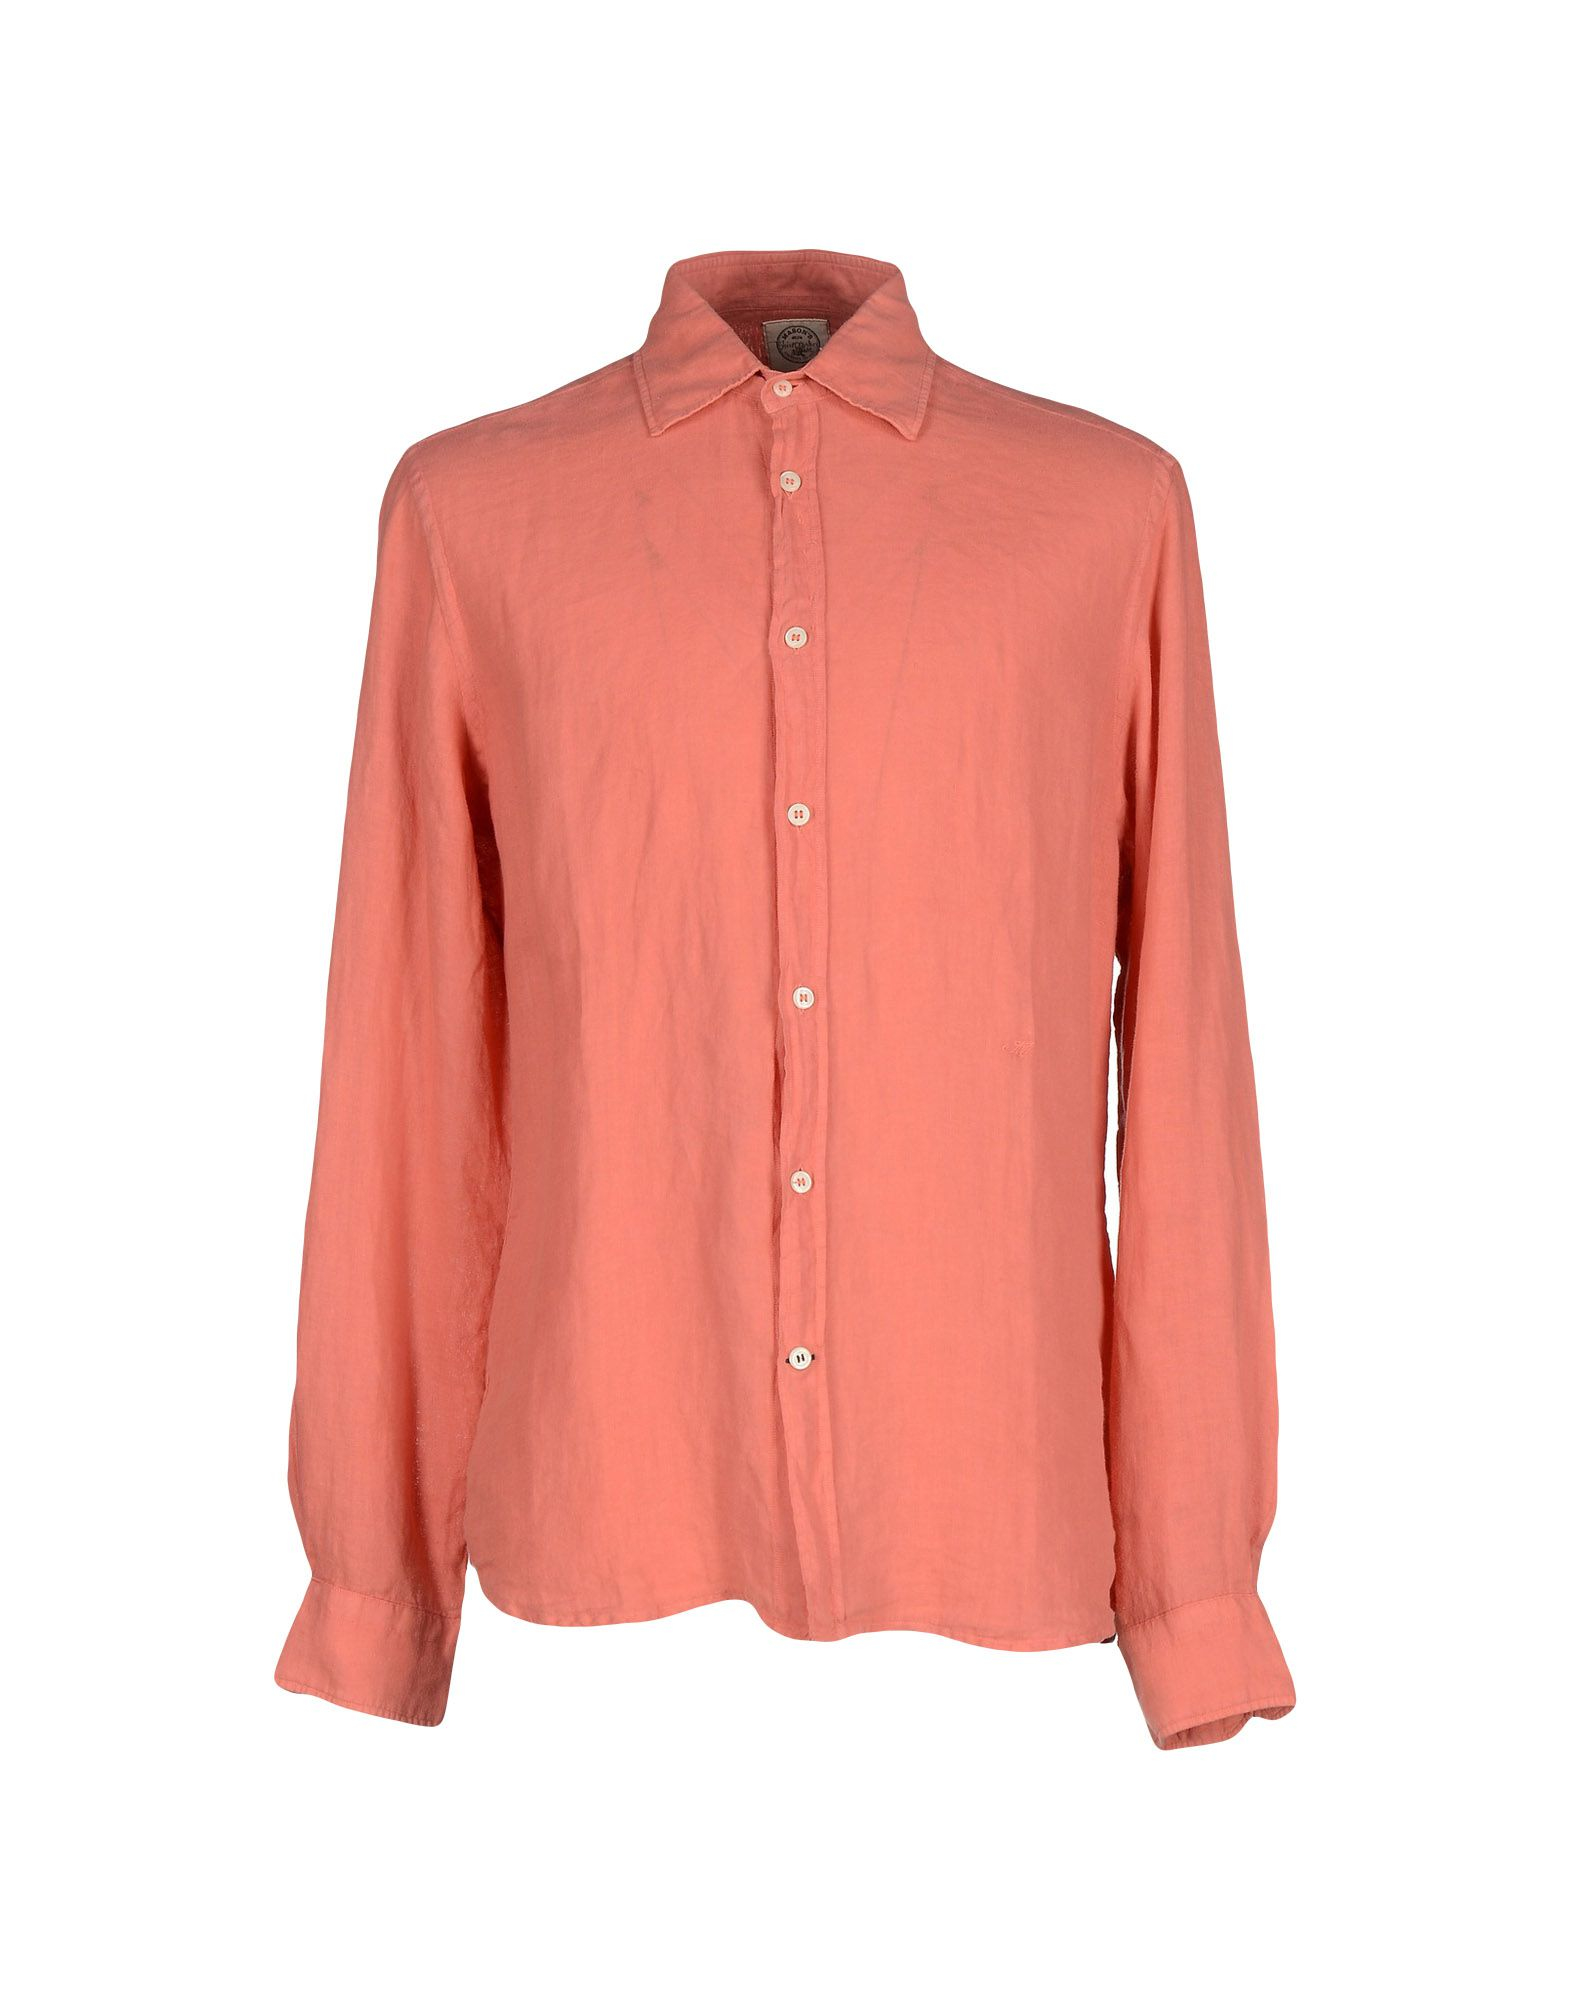 Mason 39 S Shirt In Pink For Men Salmon Pink Save 23 Lyst